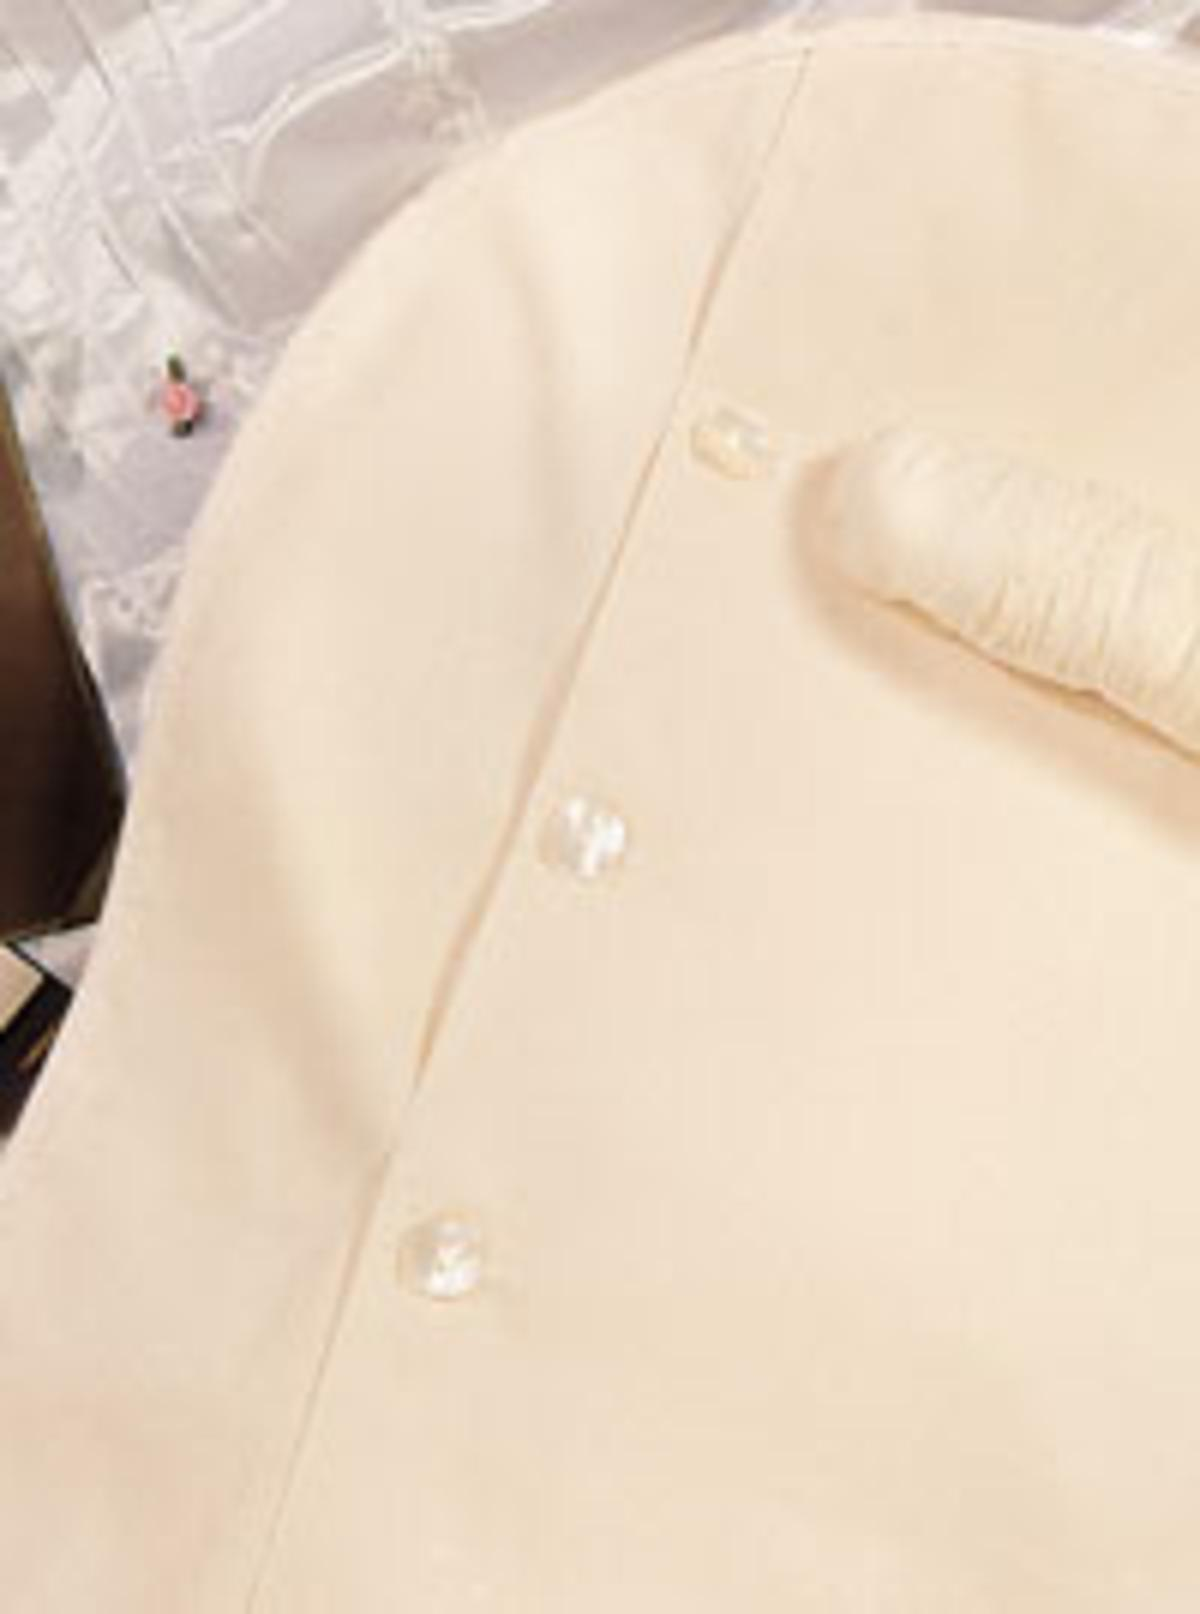 Making Christening Gowns And Christening Suits A Family Heirloom